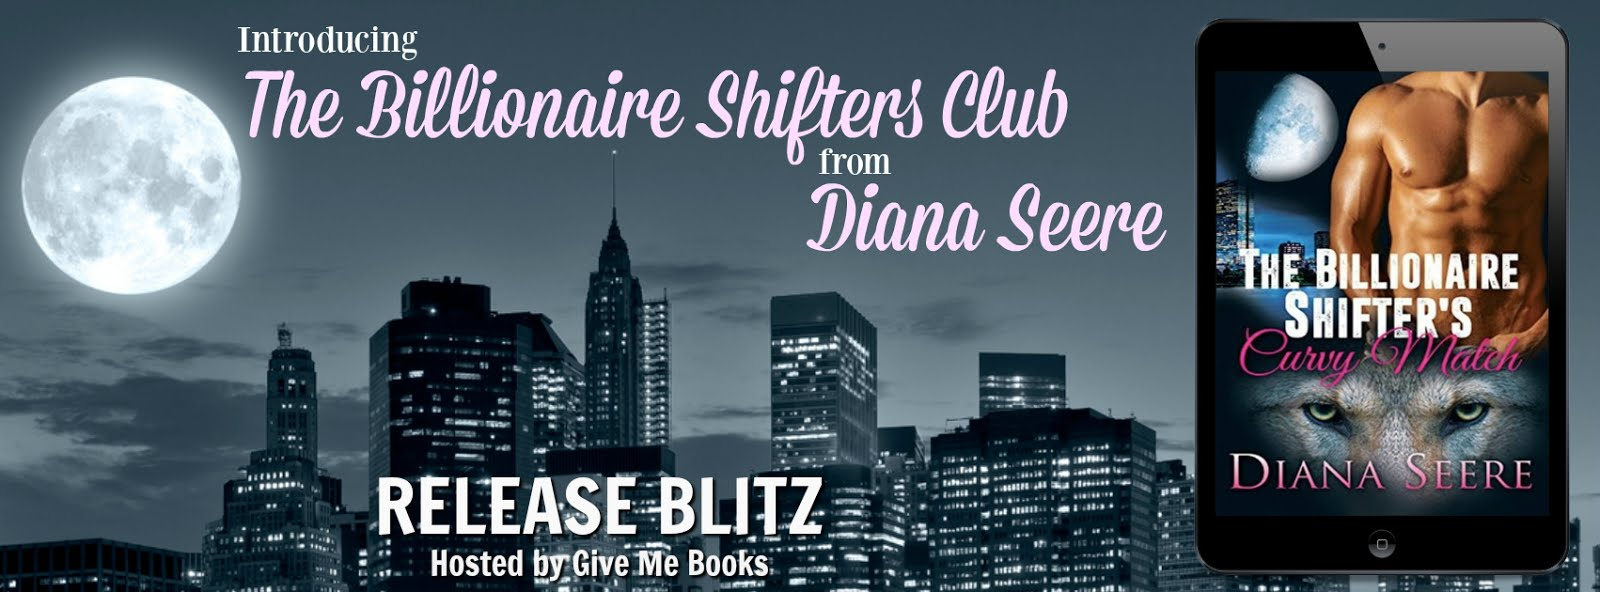 The Billionaire Shifters  Curvy Match Release